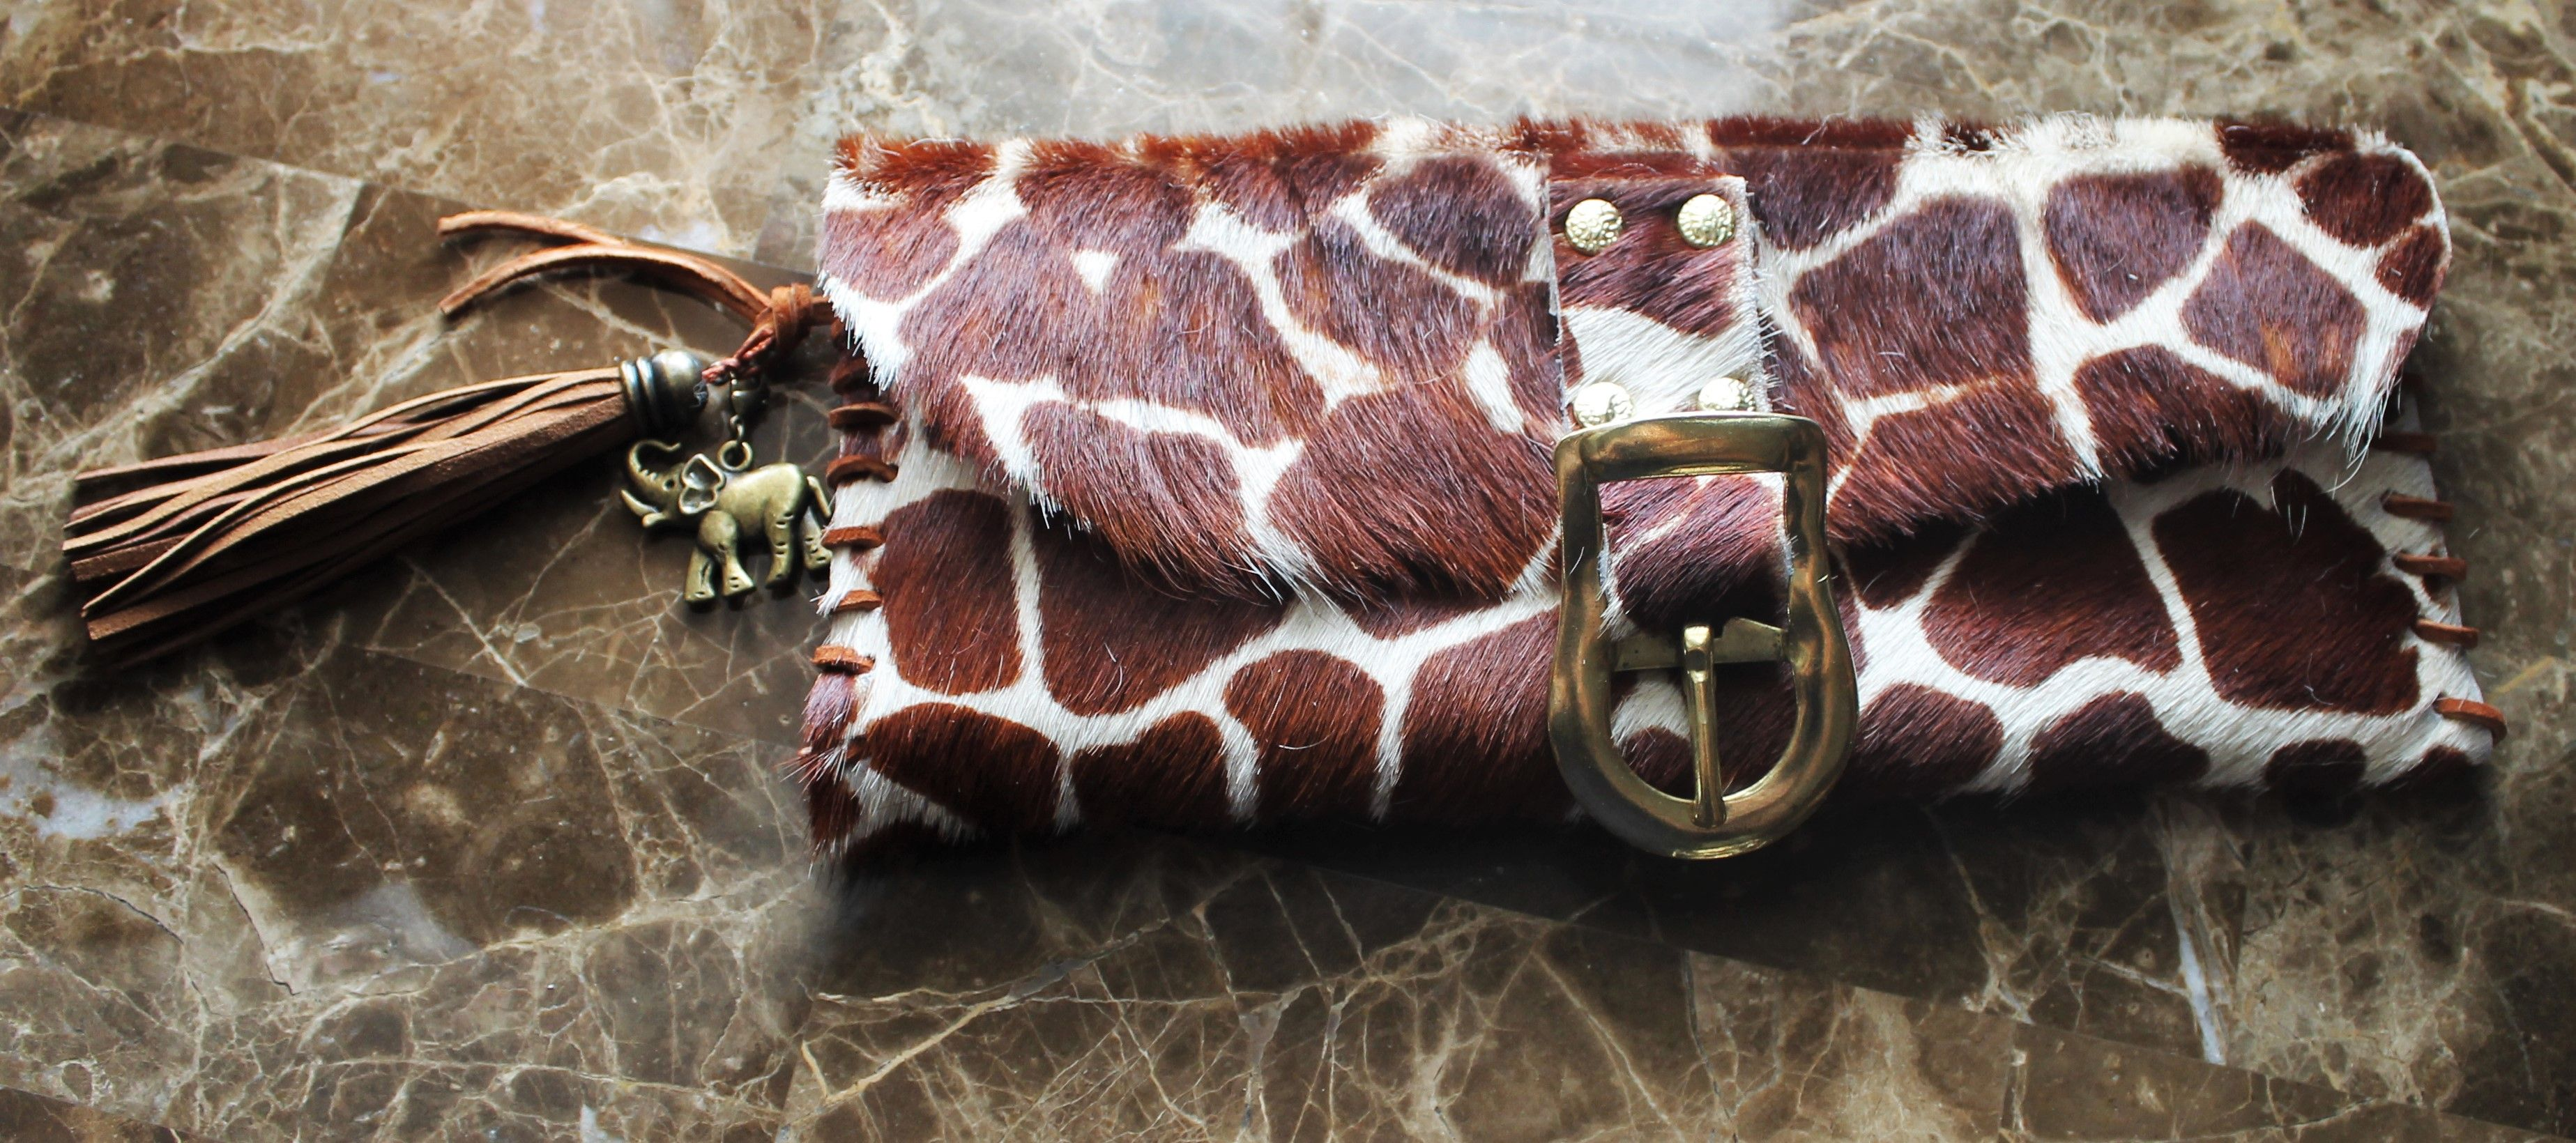 The beautiful Savanah Mini Clutch Purse ~ collection available now on our website ~ www.wildideasbyelephant.com or our Etsy store: https://www.etsy.com/shop/WildIdeasbyELEPHANT